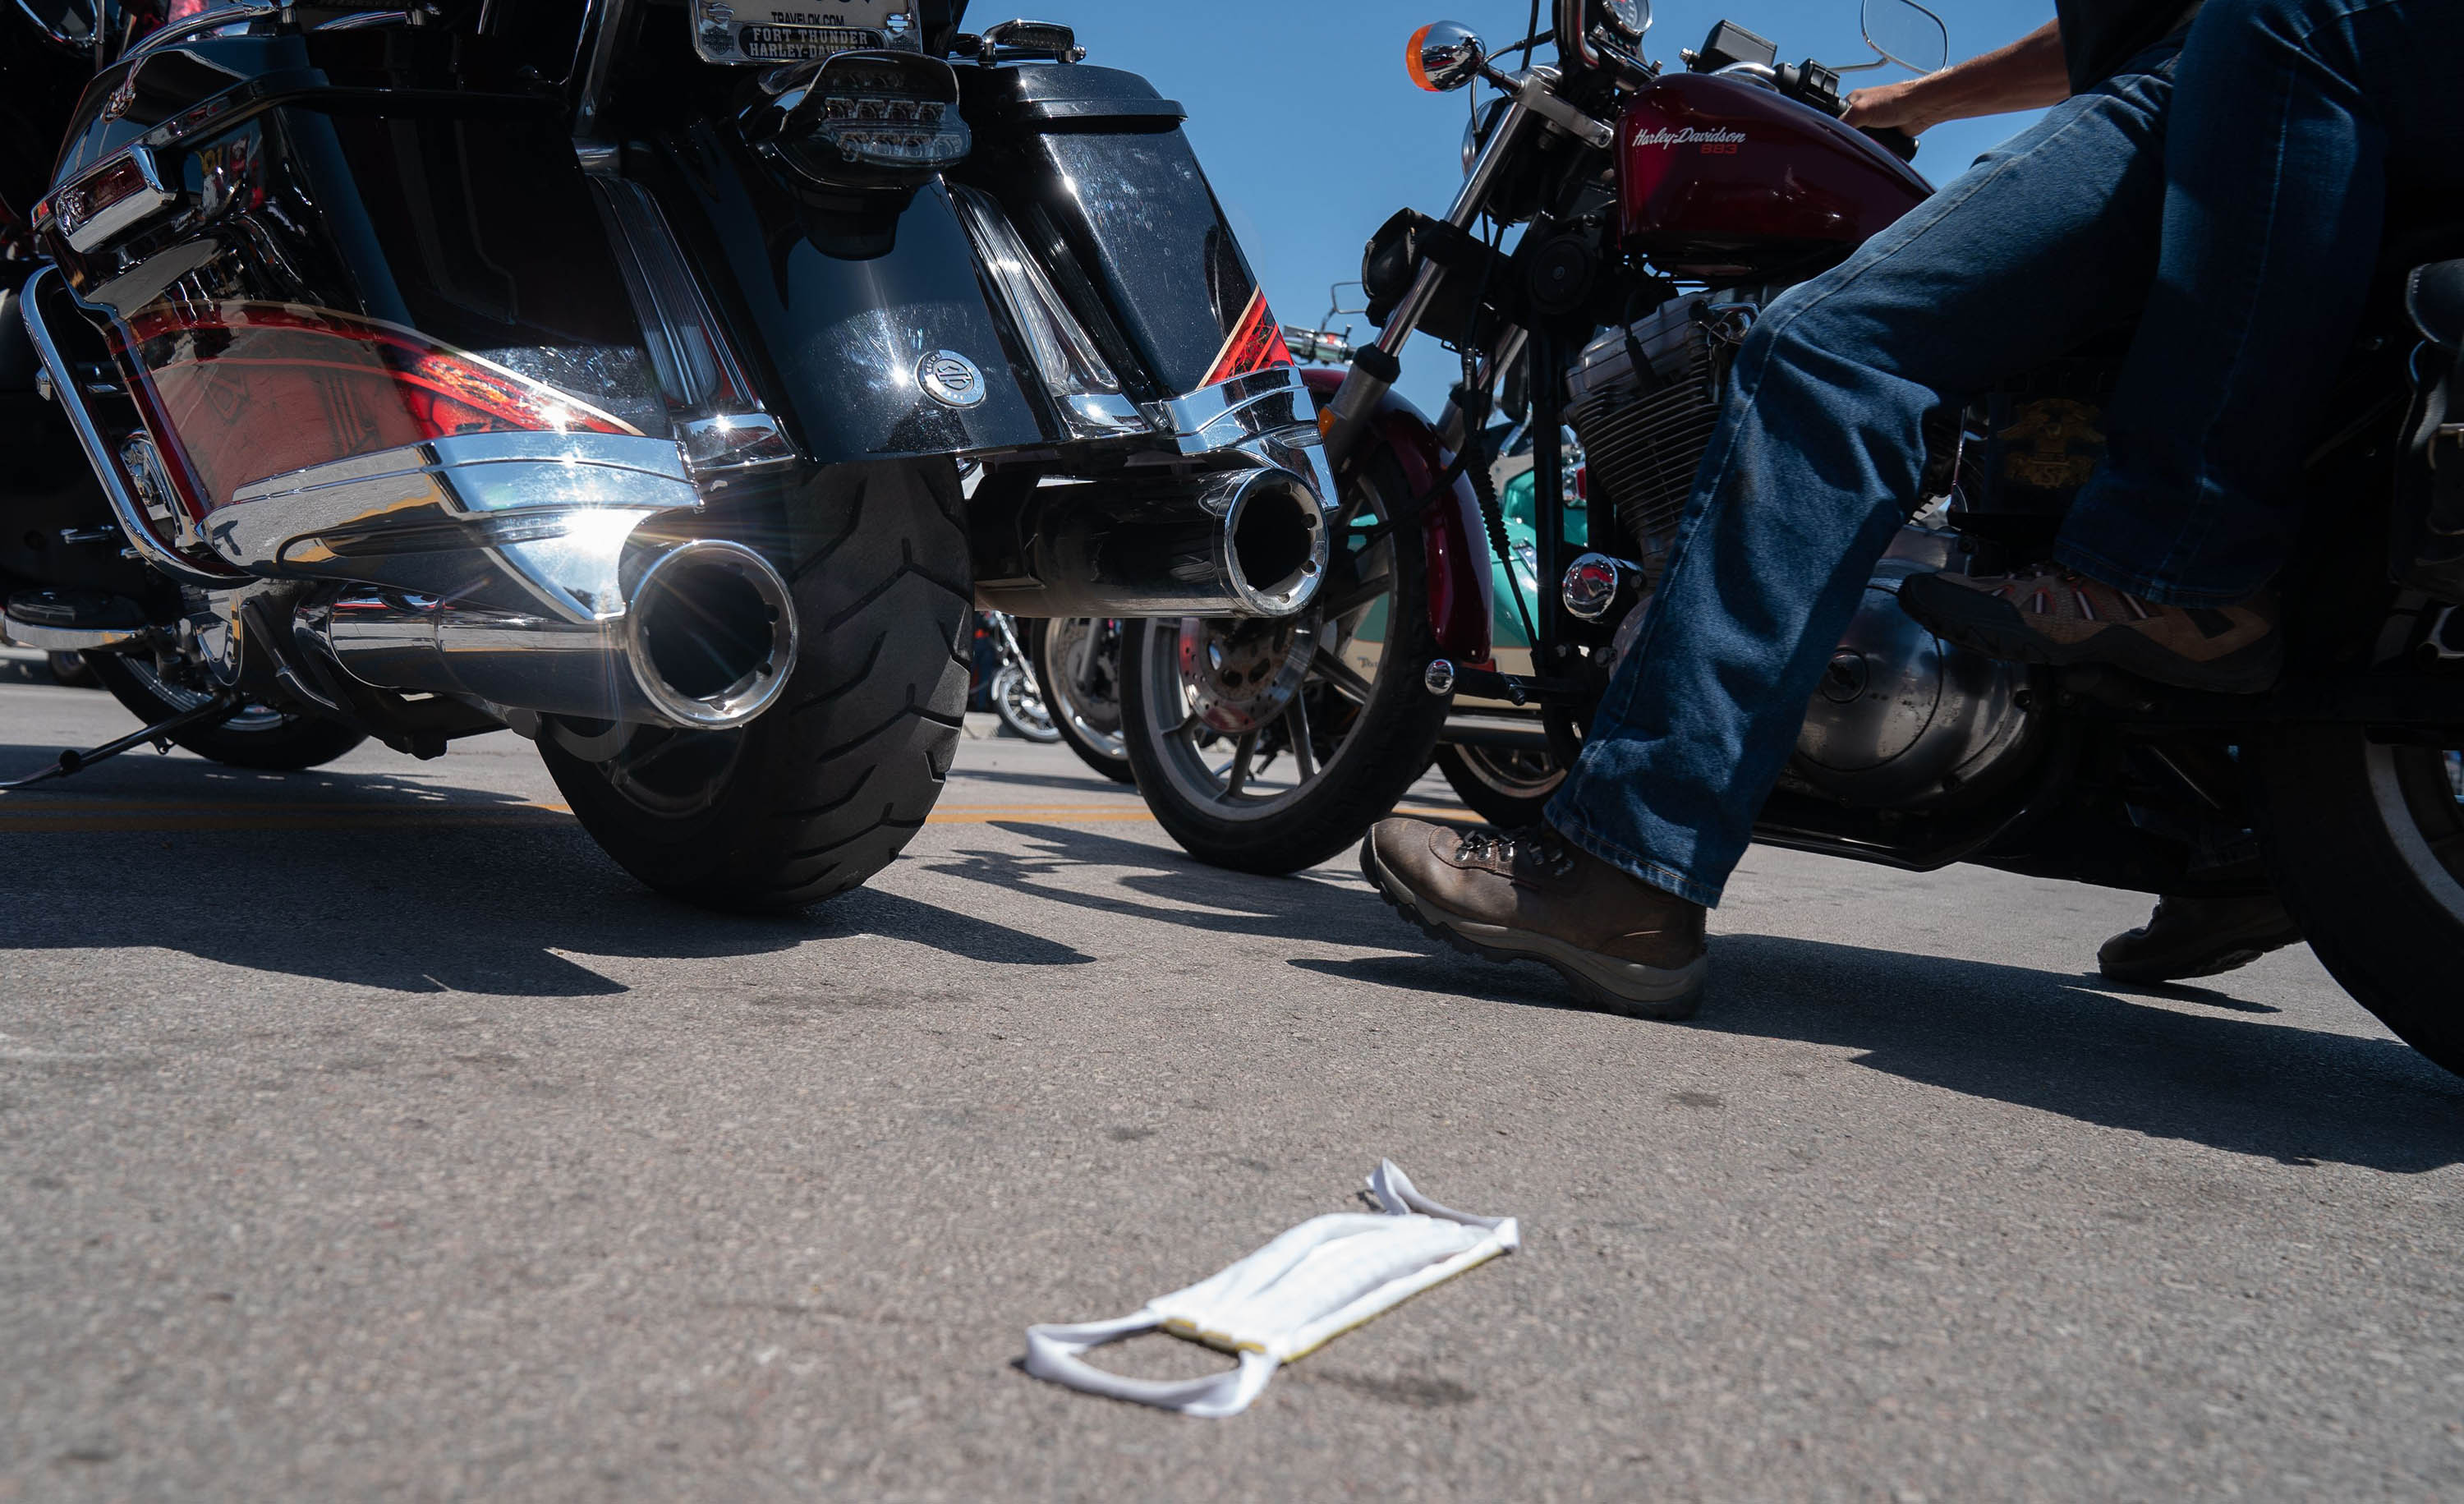 Experts feared the Sturgis Motorcycle Rally could be a superspreading event. More than 70 coronavirus cases are already linked to it